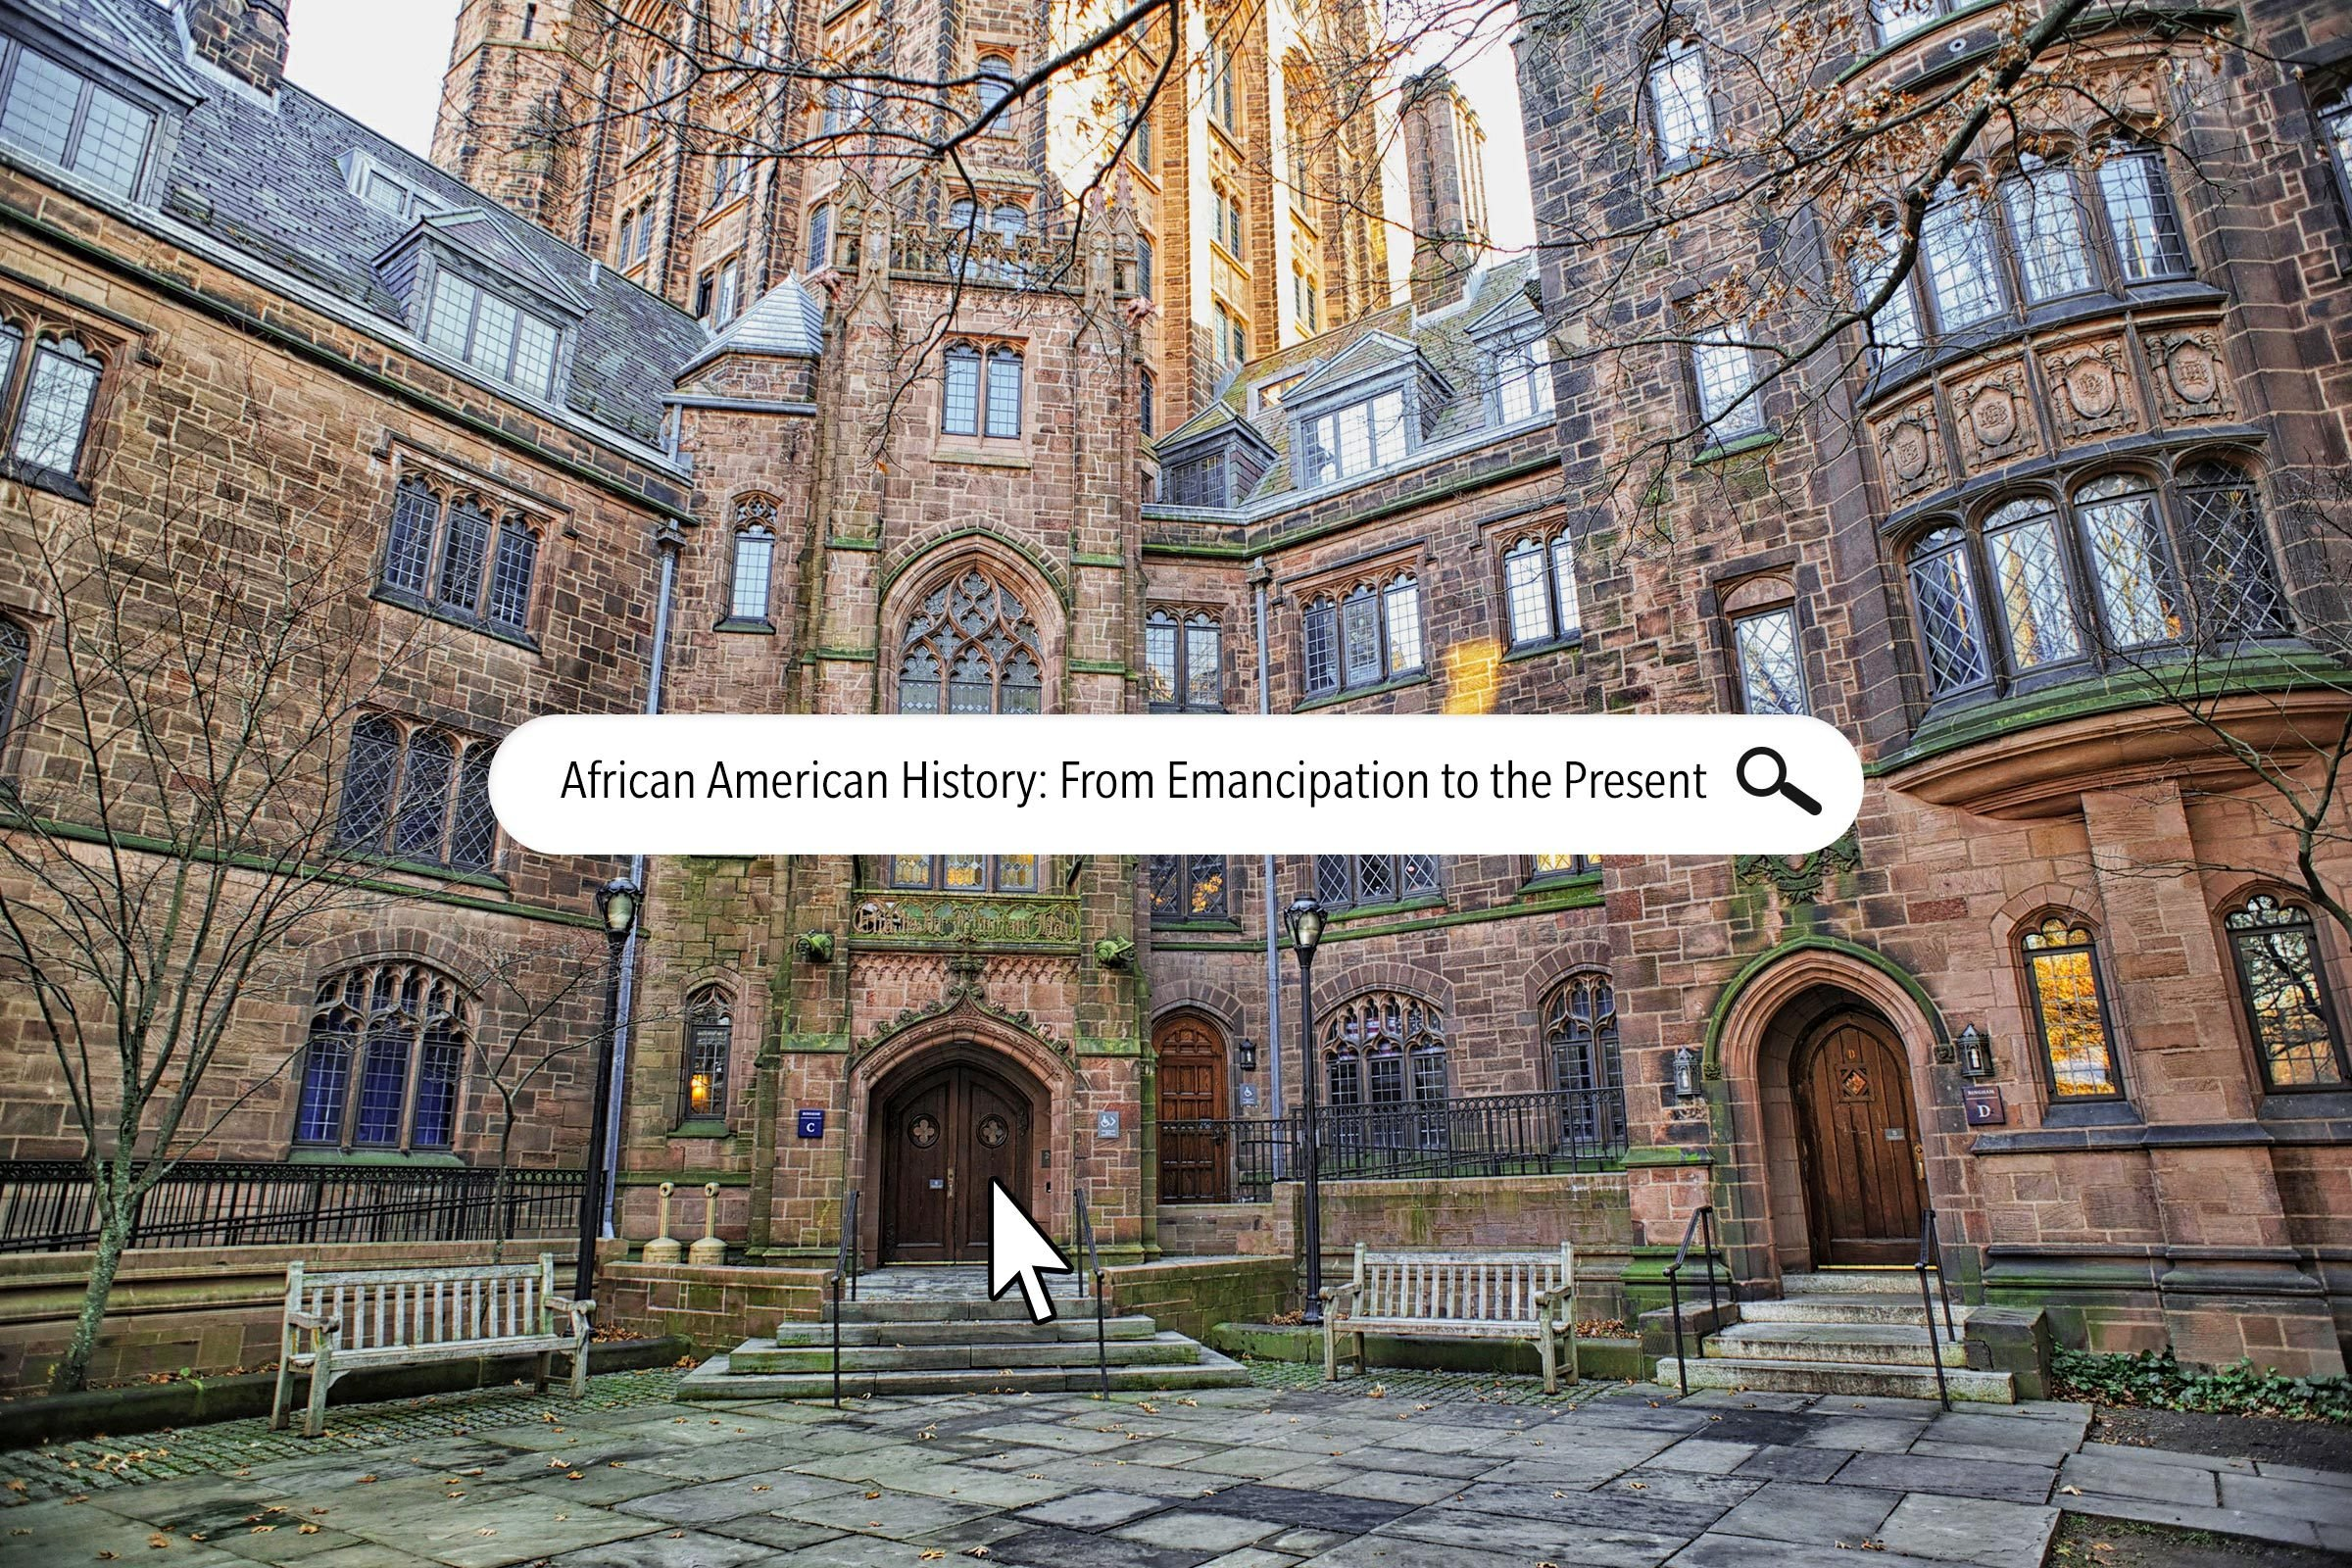 African American History: From Emancipation to the Present (Yale University)